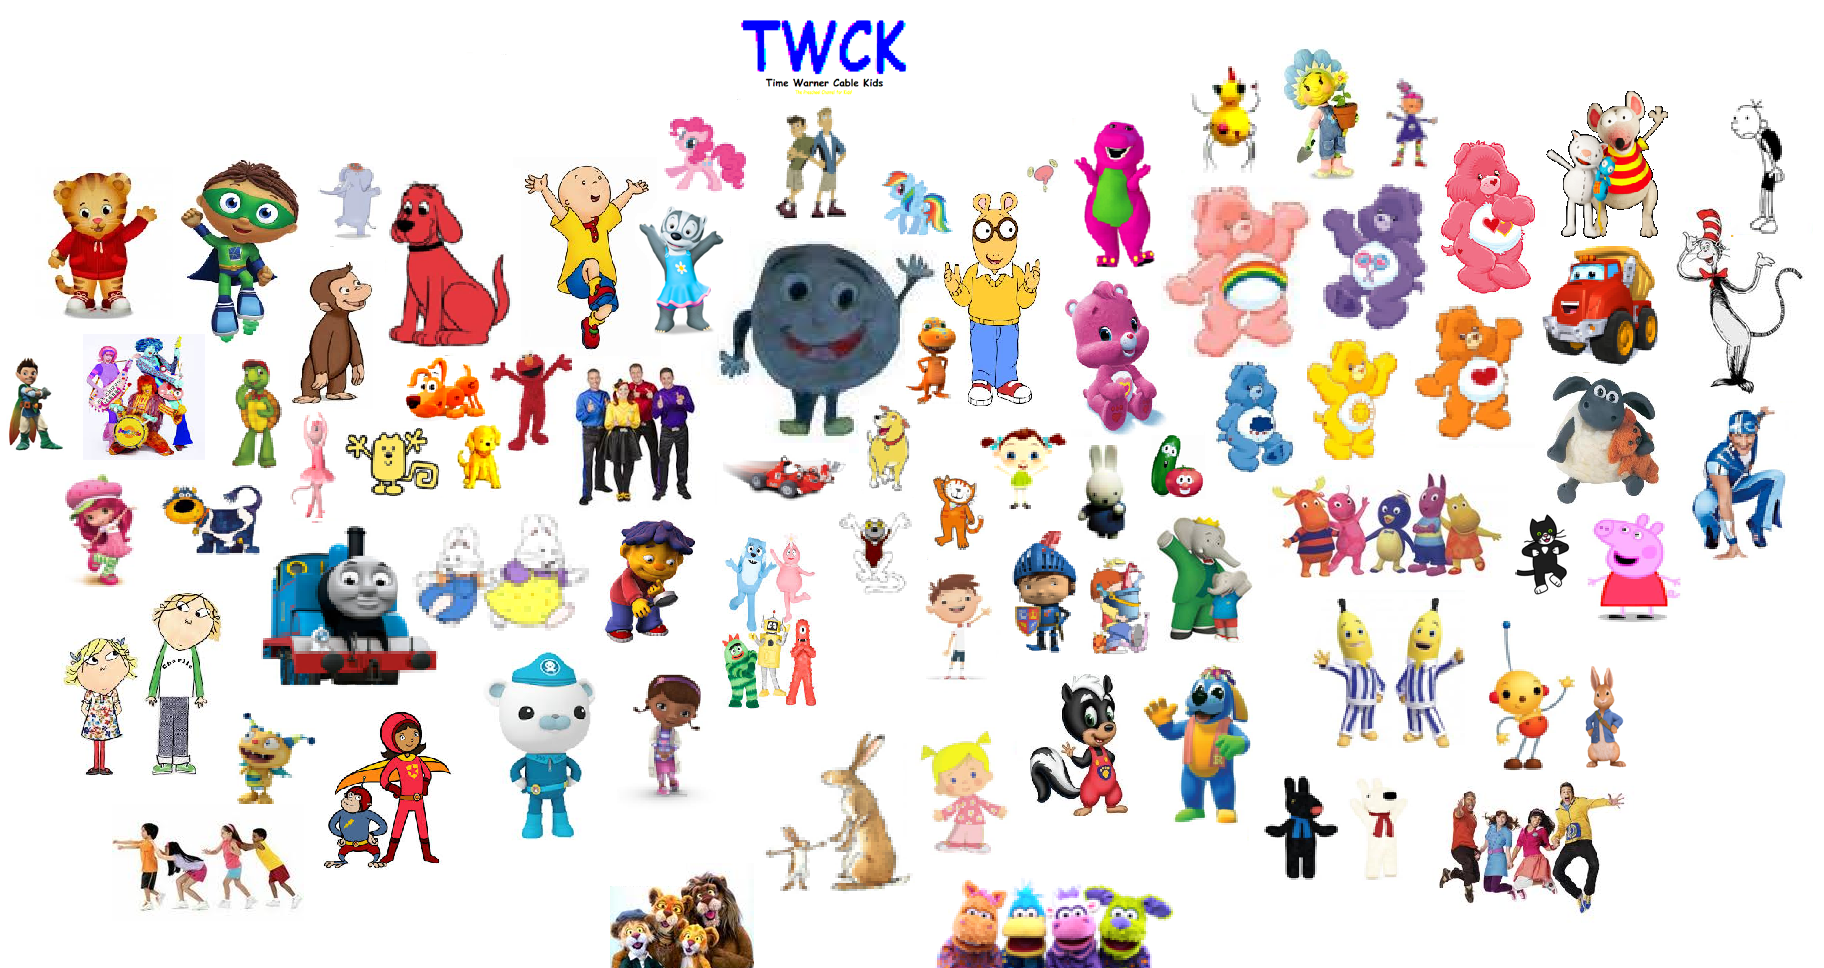 Pbs Kids Characters And Names Time Warner Cable Kids...